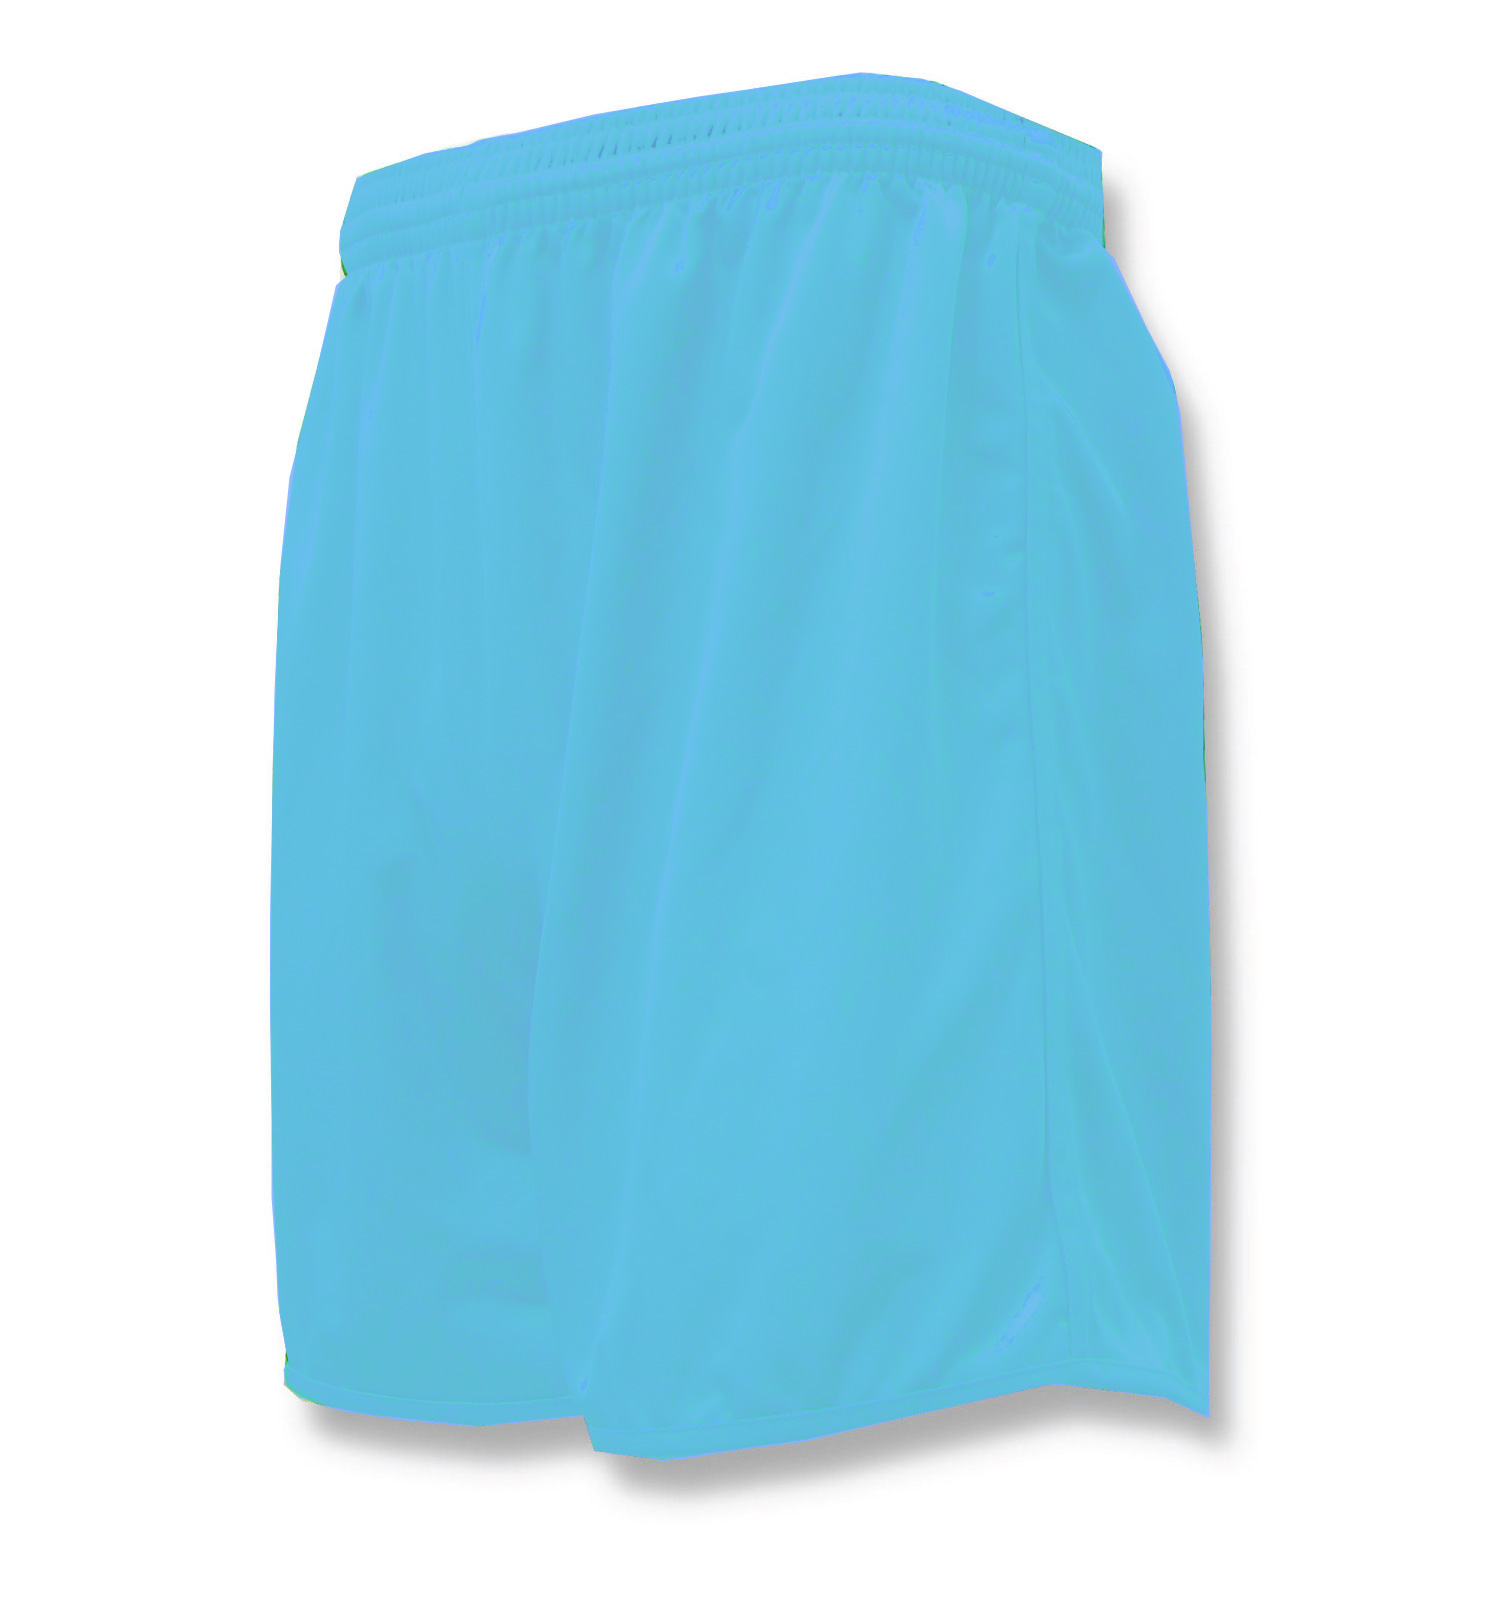 Bravo soccer shorts in sky blue by Code Four Athletics